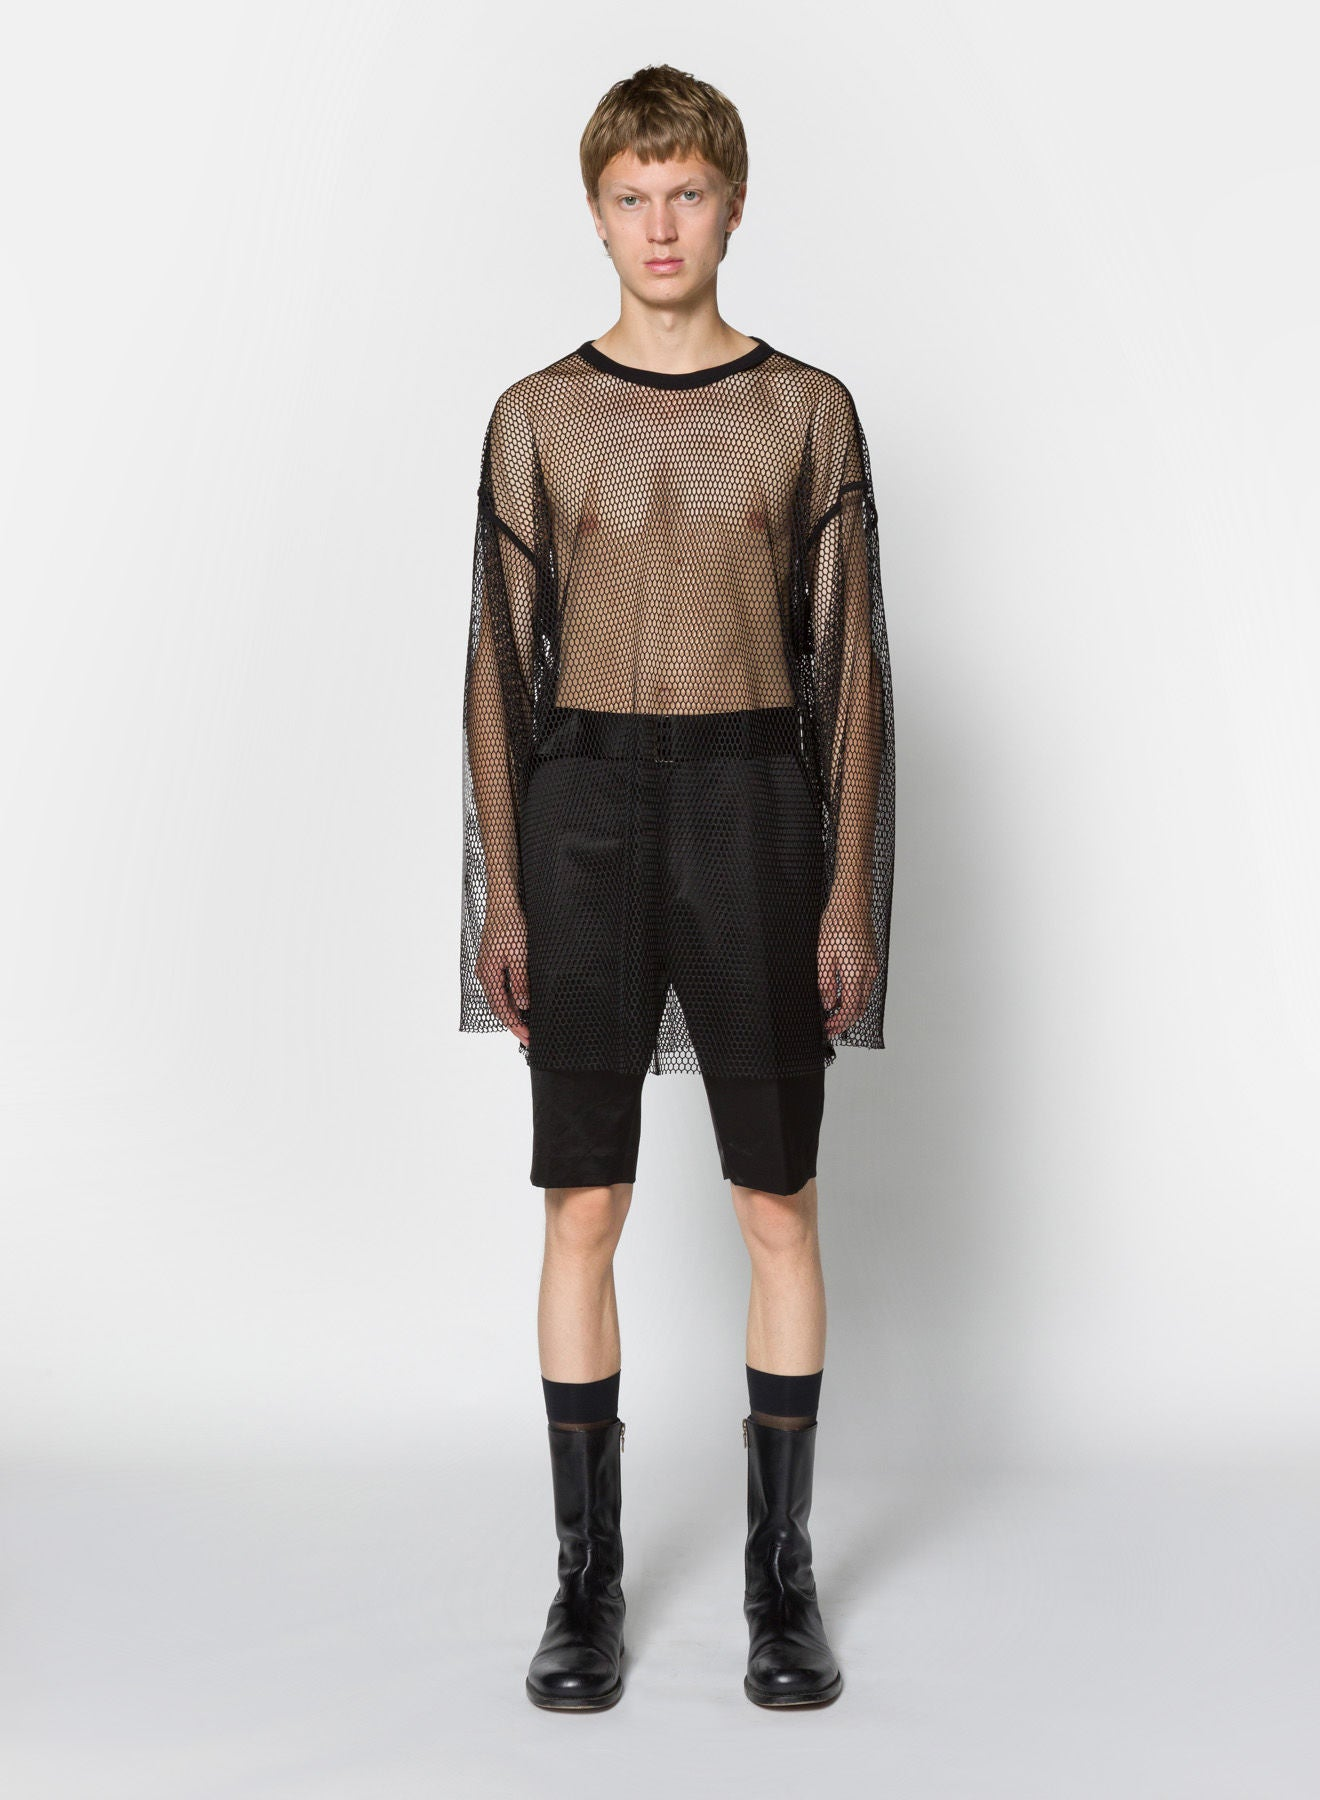 HEGLAND BIS long sleeve mesh shirt